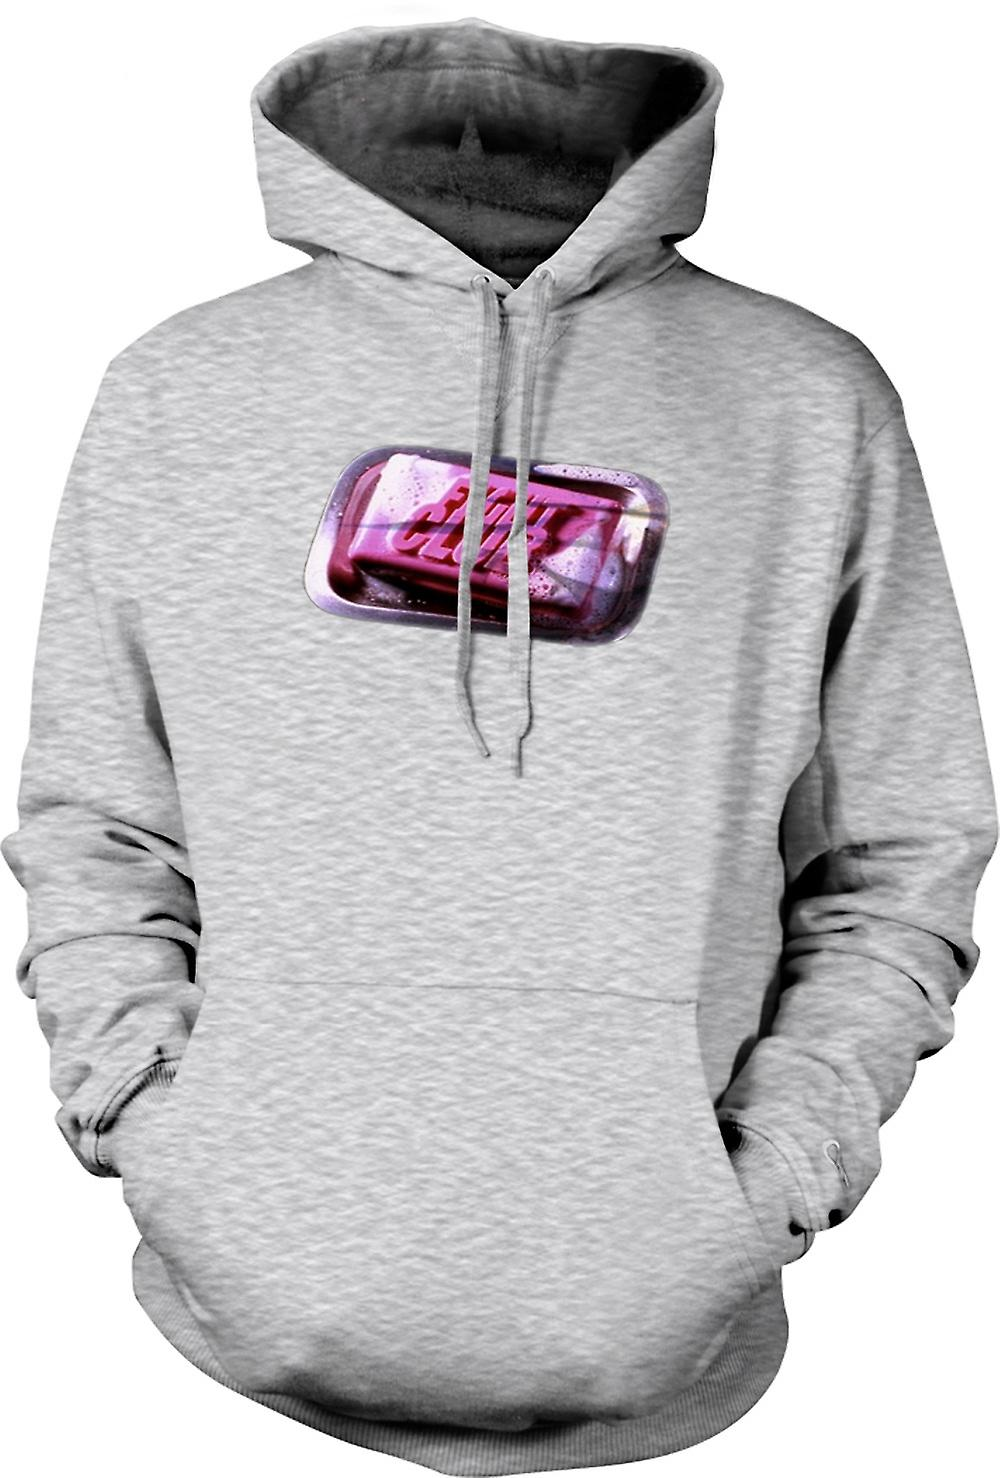 Mens Hoodie - Fight Club - Soap - Movie